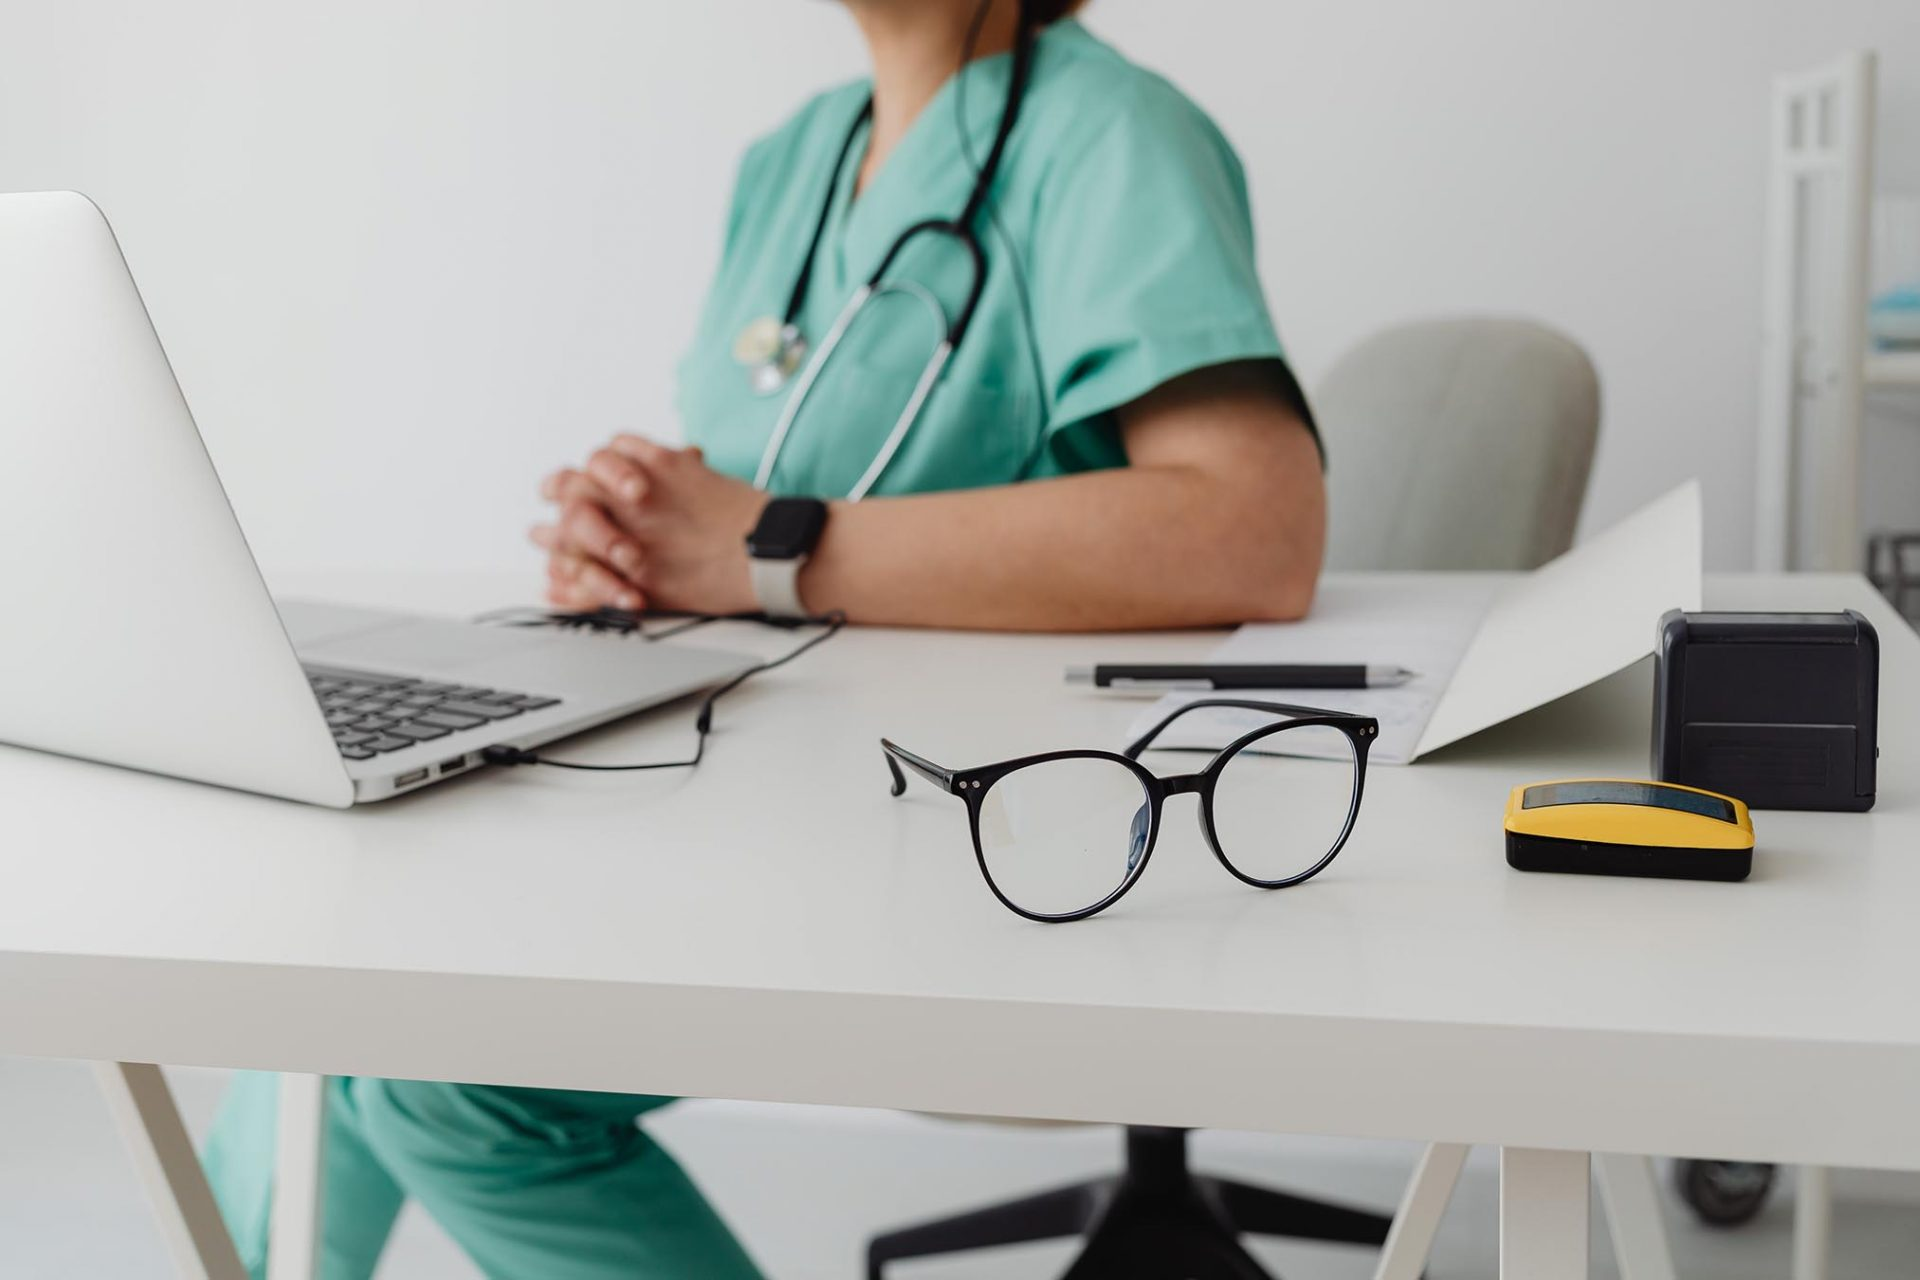 uk cannabis doctor consulting online